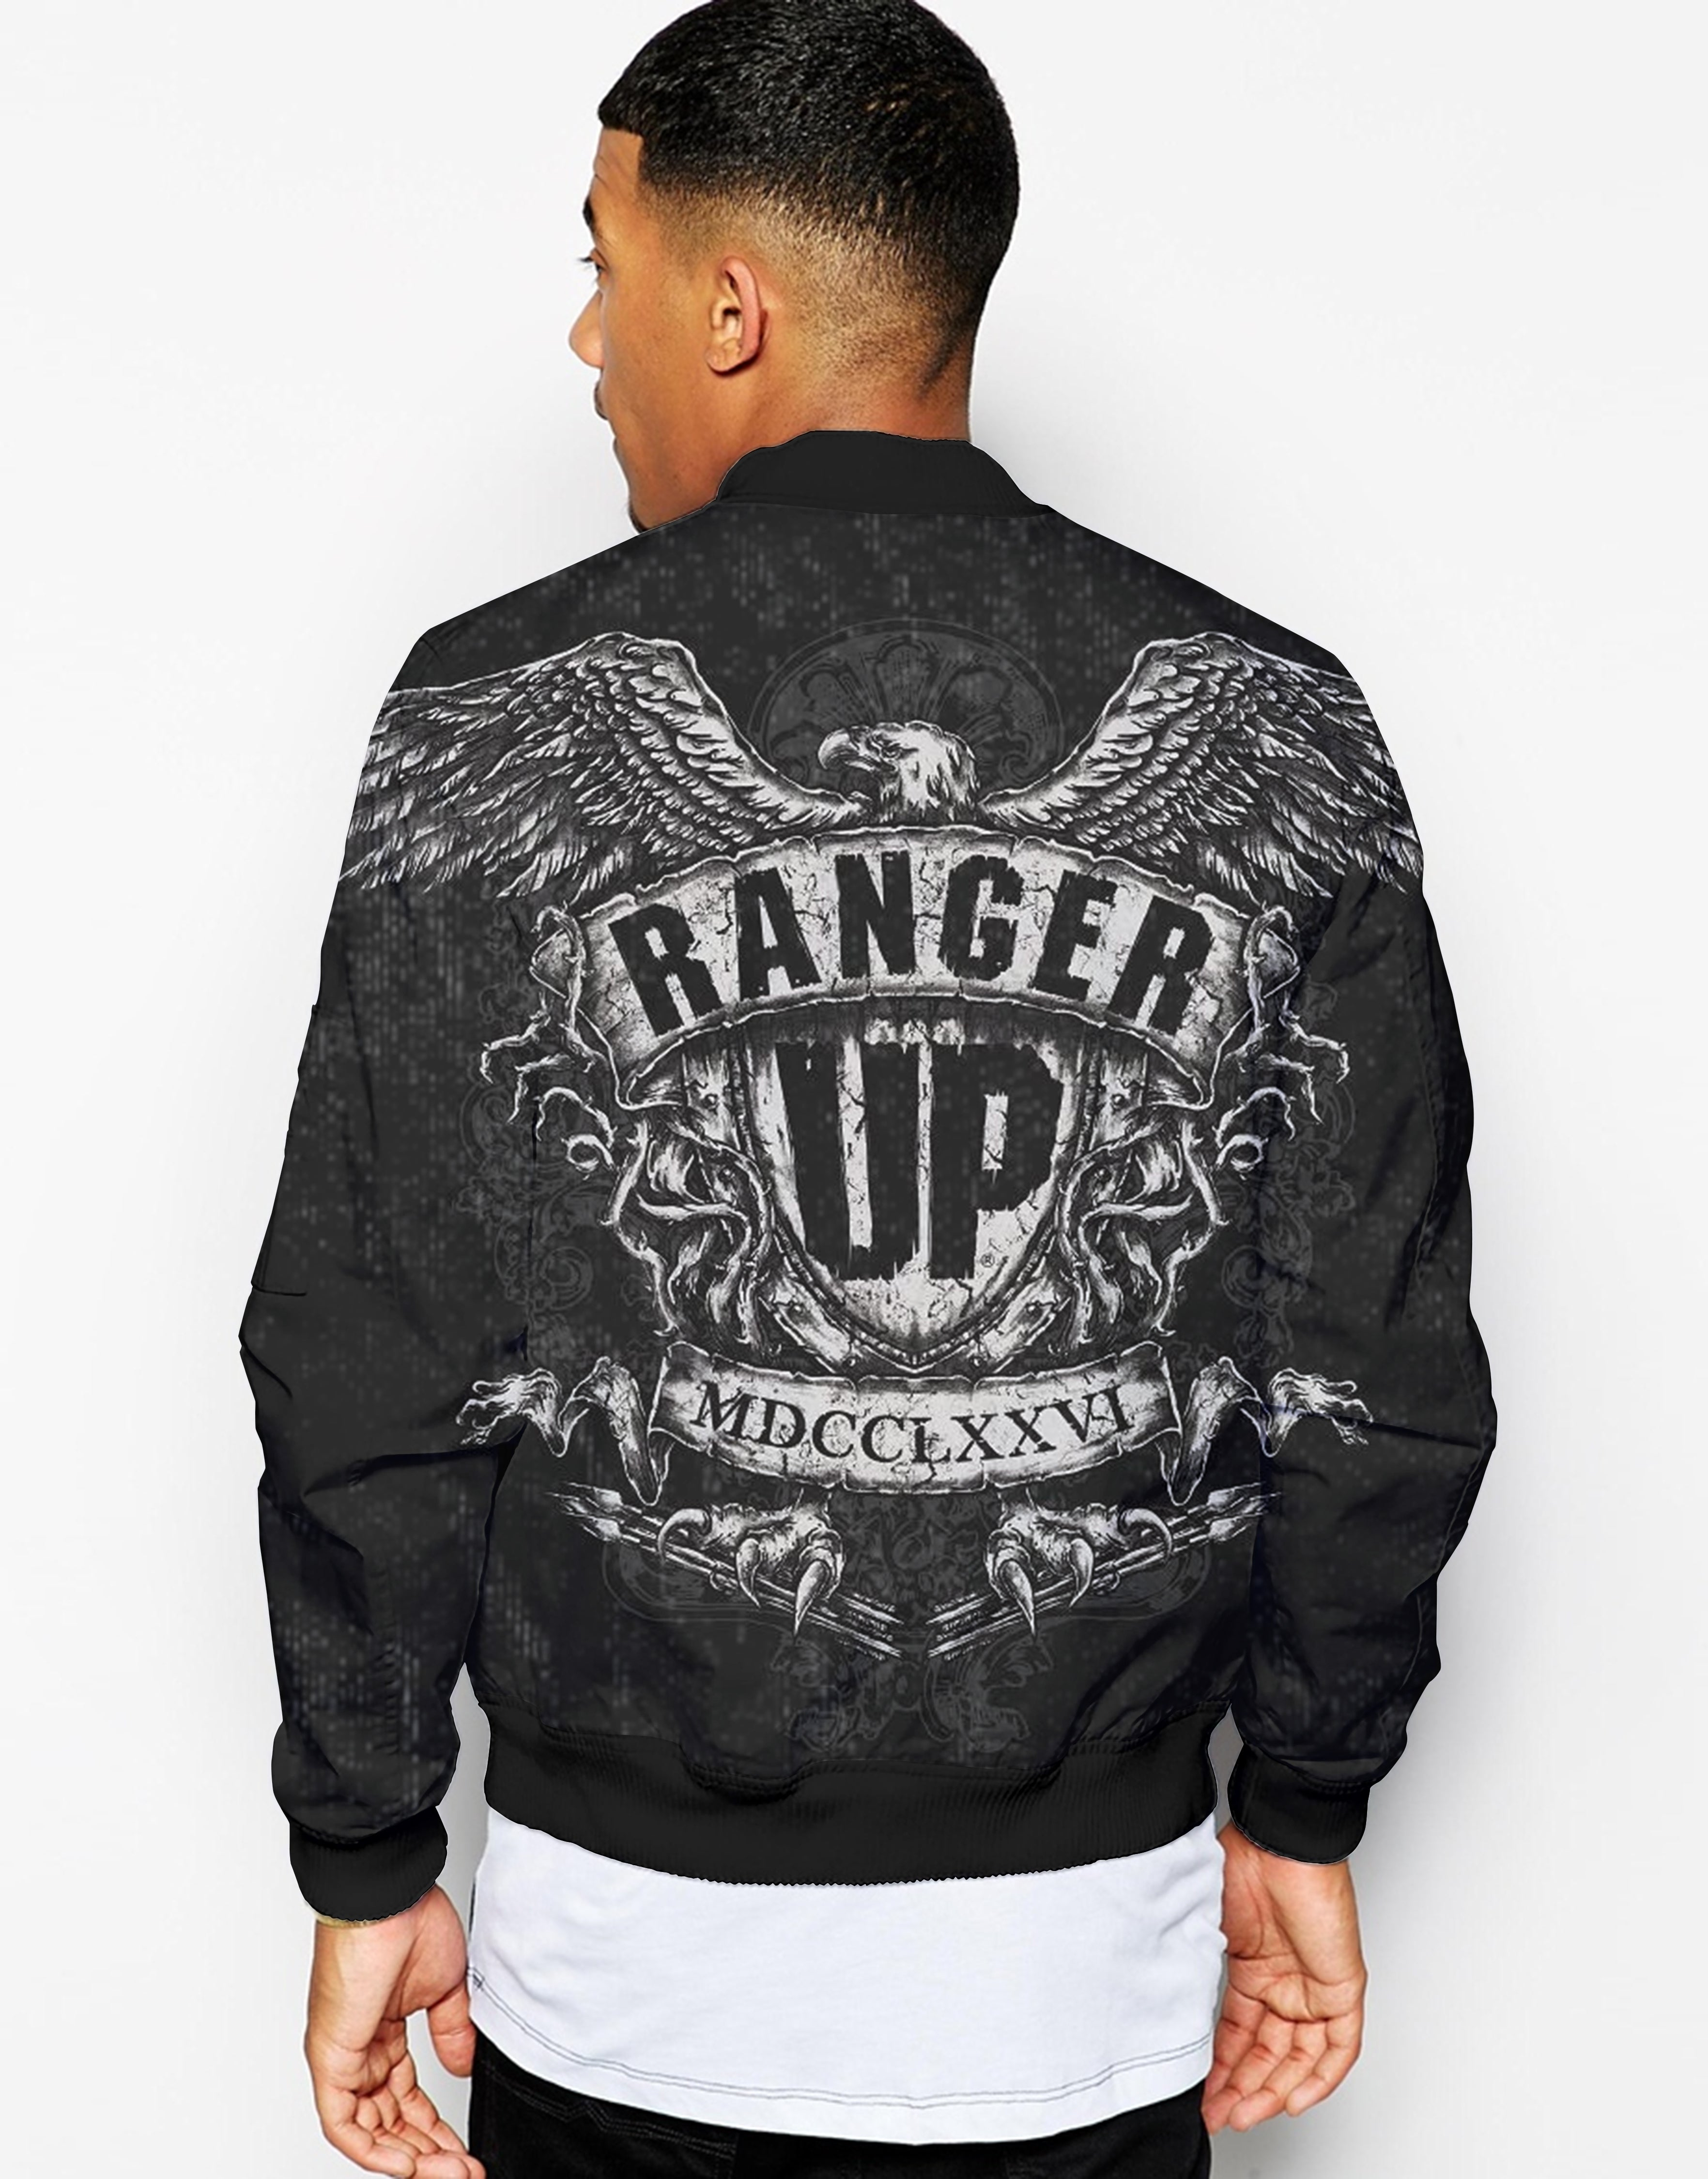 Unisex Couple 3D Army Forces Art Printed Driver Bomber Jacket - RANGER UP MCDDCLXXVI - designfullprint